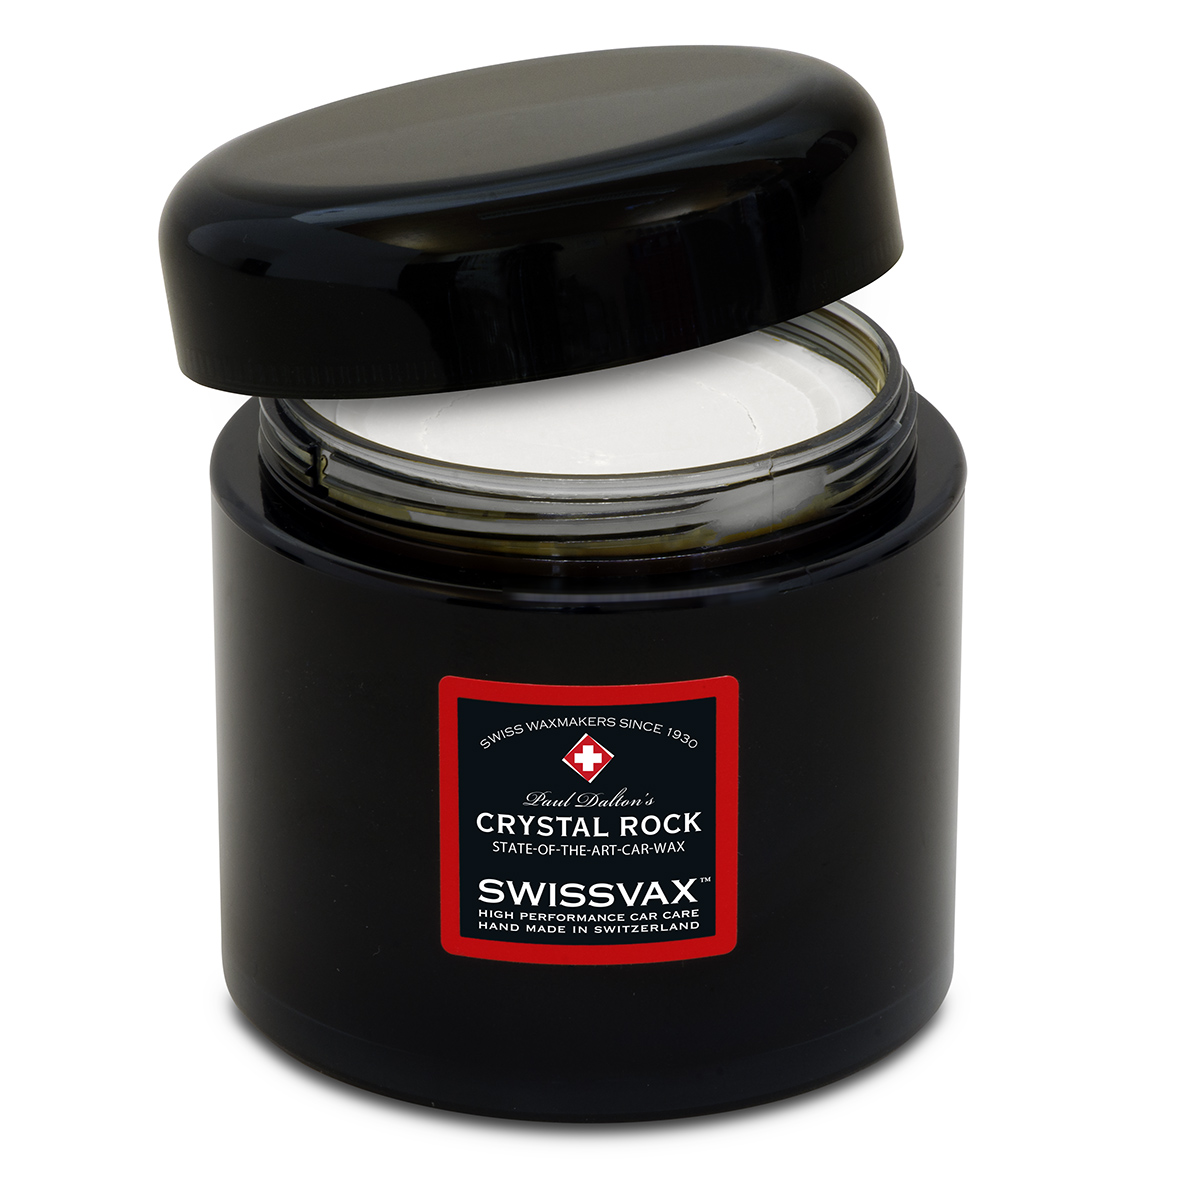 Swissvax Detailing Crystal Rock Car Wax